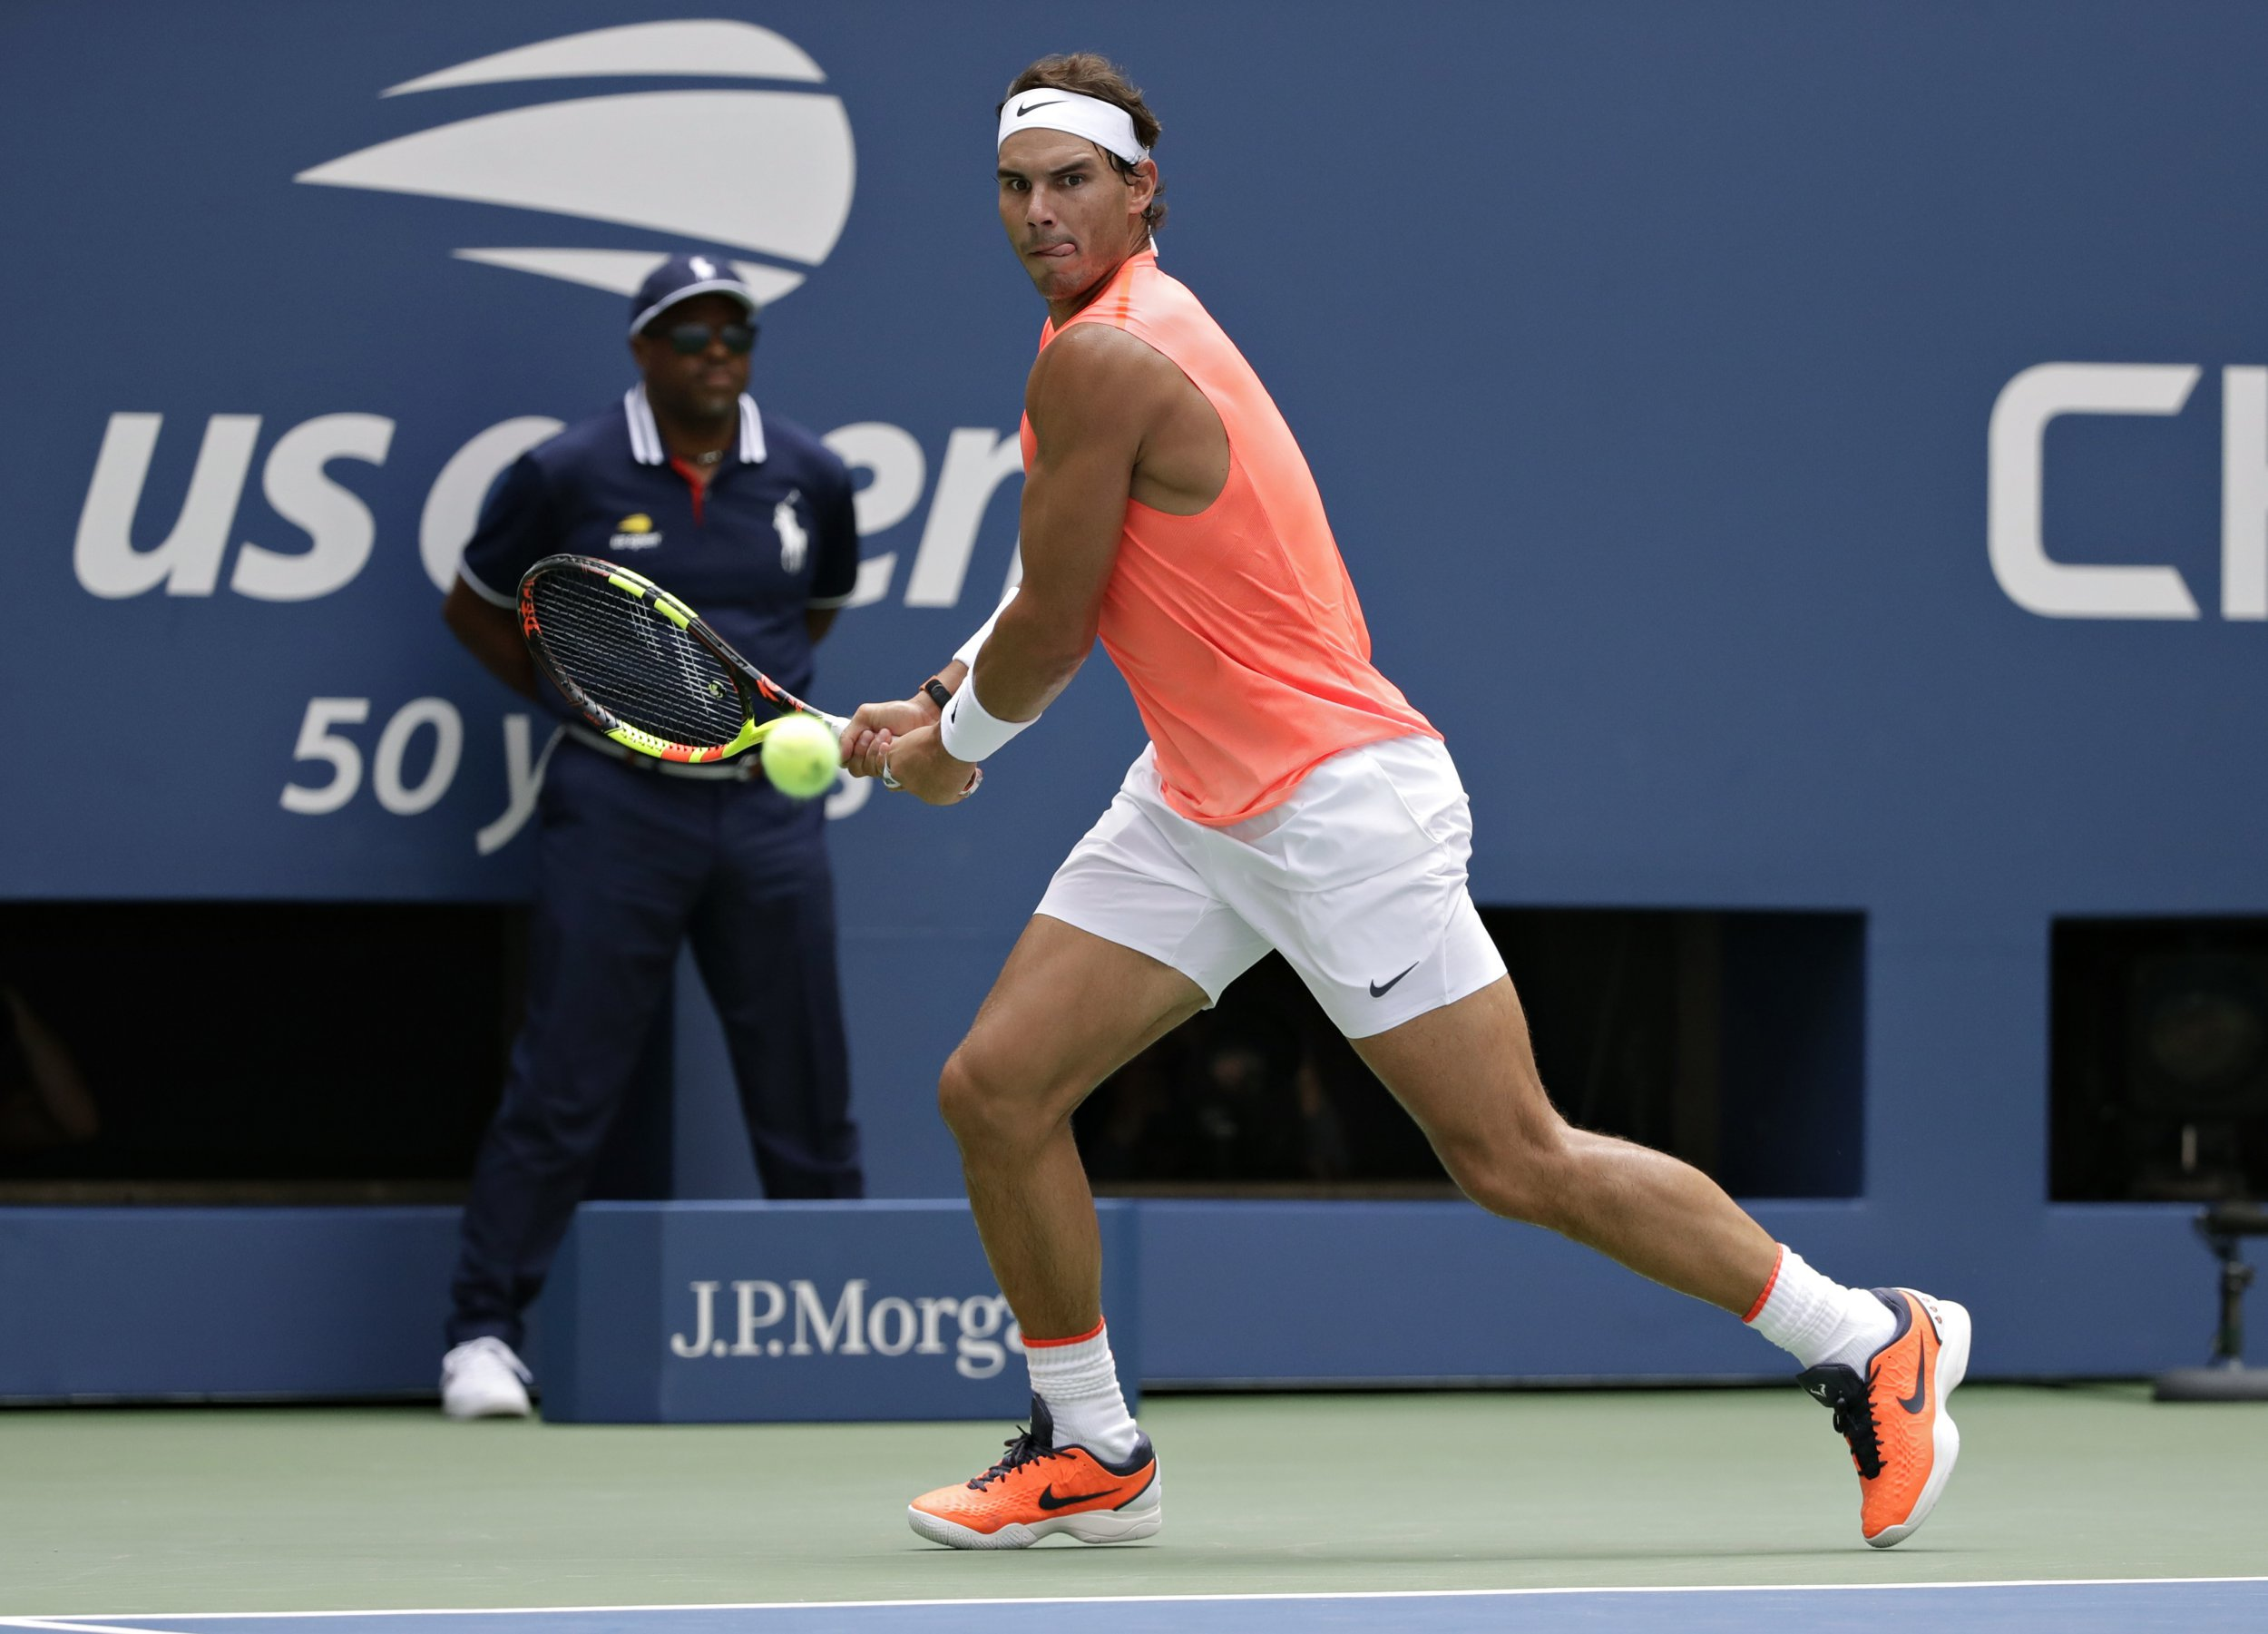 Rafael Nadal ditches knee tape and digs deep to reach US Open quarter-finals